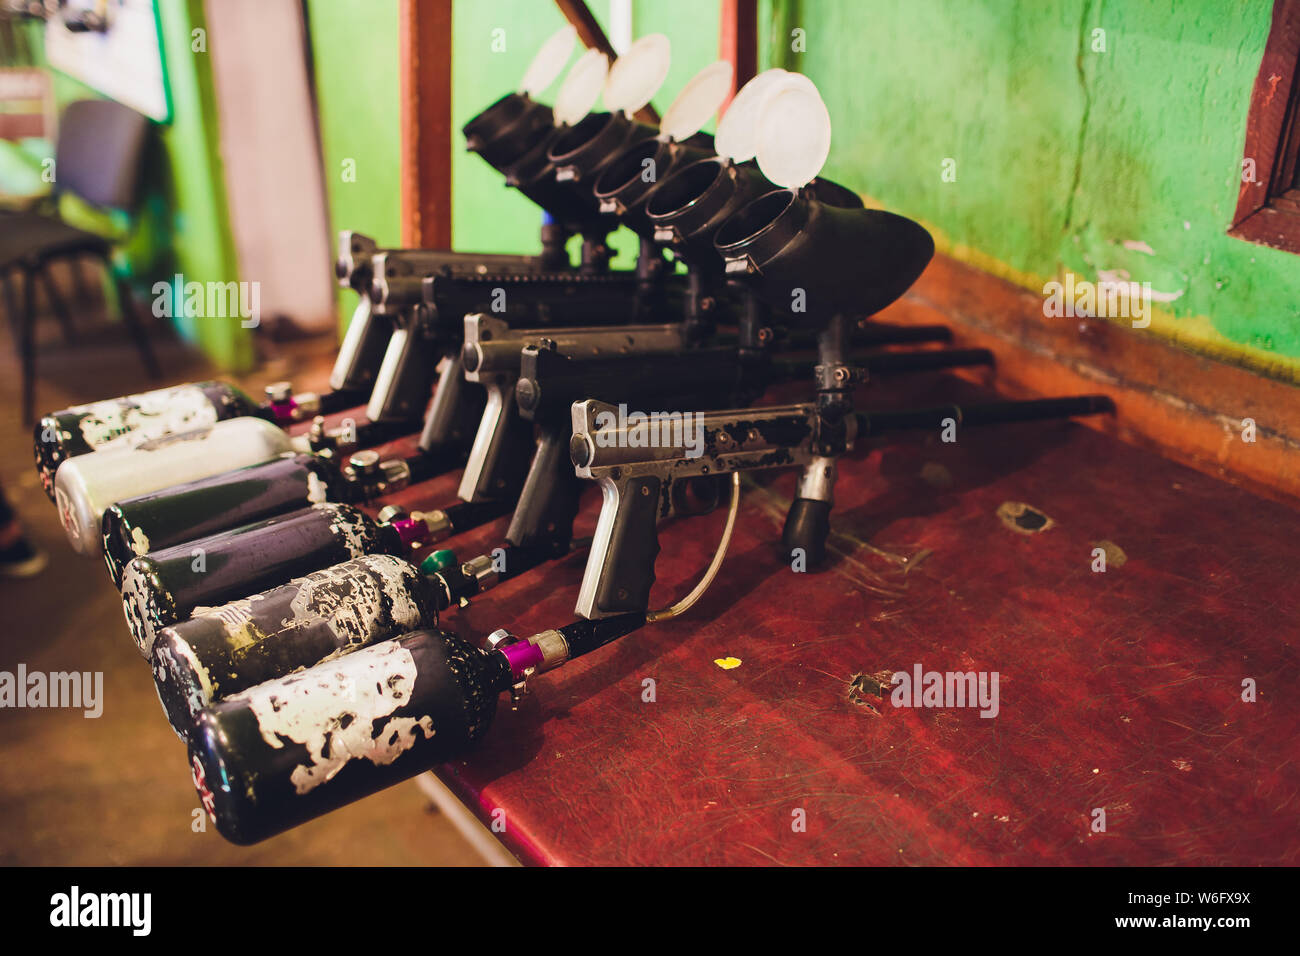 Paintball guns on a wooden table. play paintball. Stock Photo